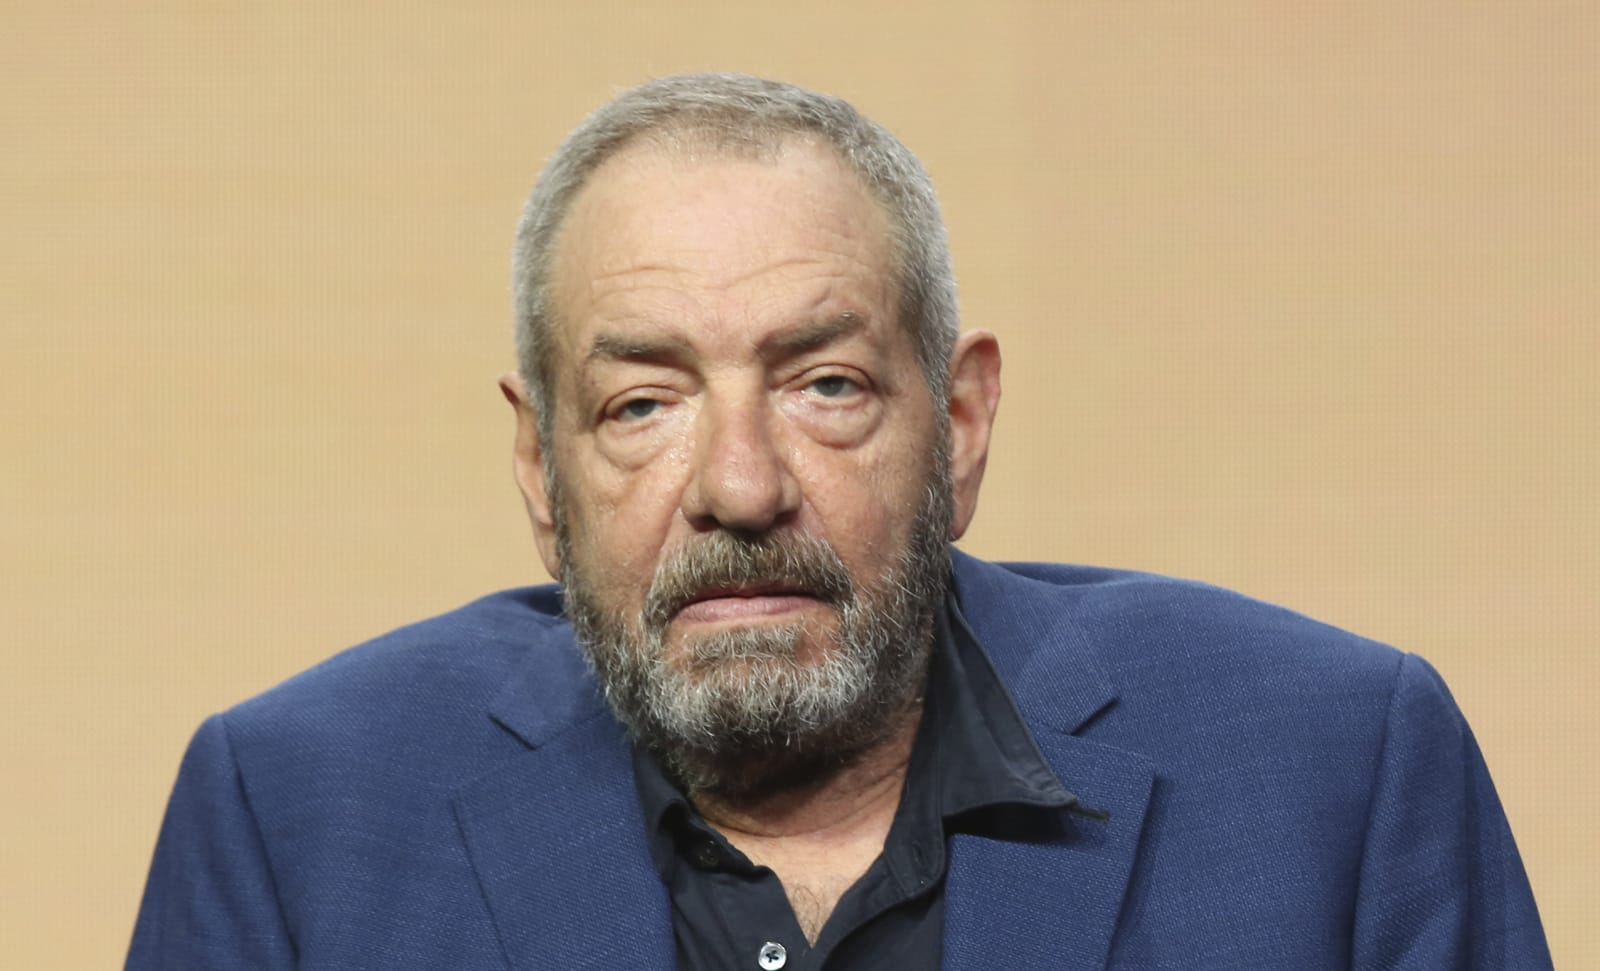 'Law & Order' creator Dick Wolf is getting into scripted podcasts